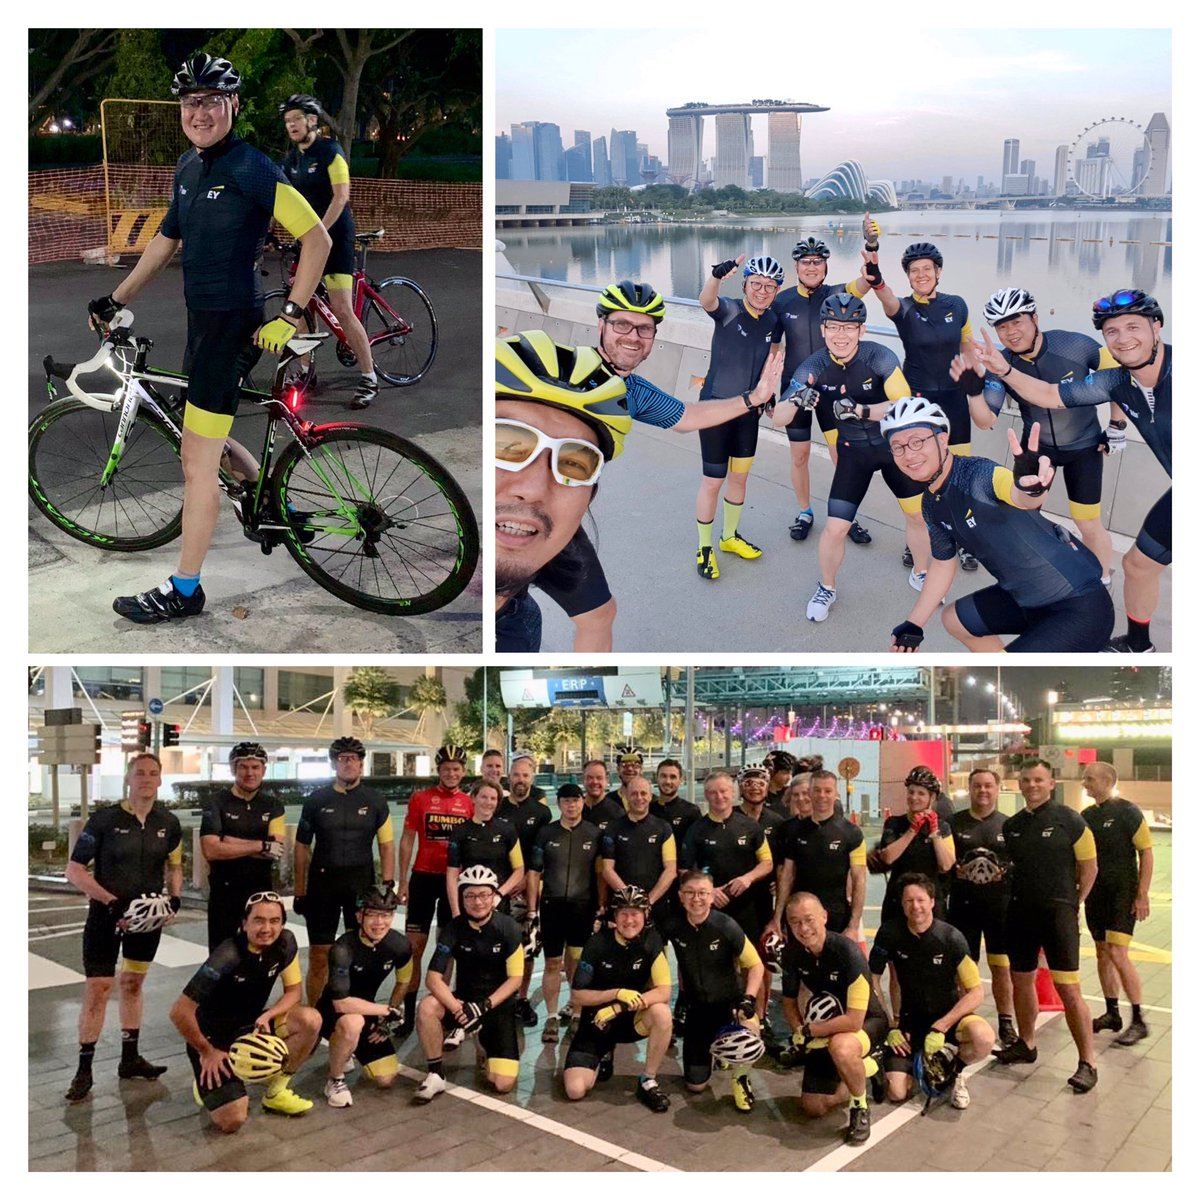 Building #better #connections with like-minded Partners at the #EY Asia Pacific Partners' Conference 2019 with an invigorating early morning 530am ride along the scenic east coast park followed by a hearty breakfast back at MBS! @chowsanghoe